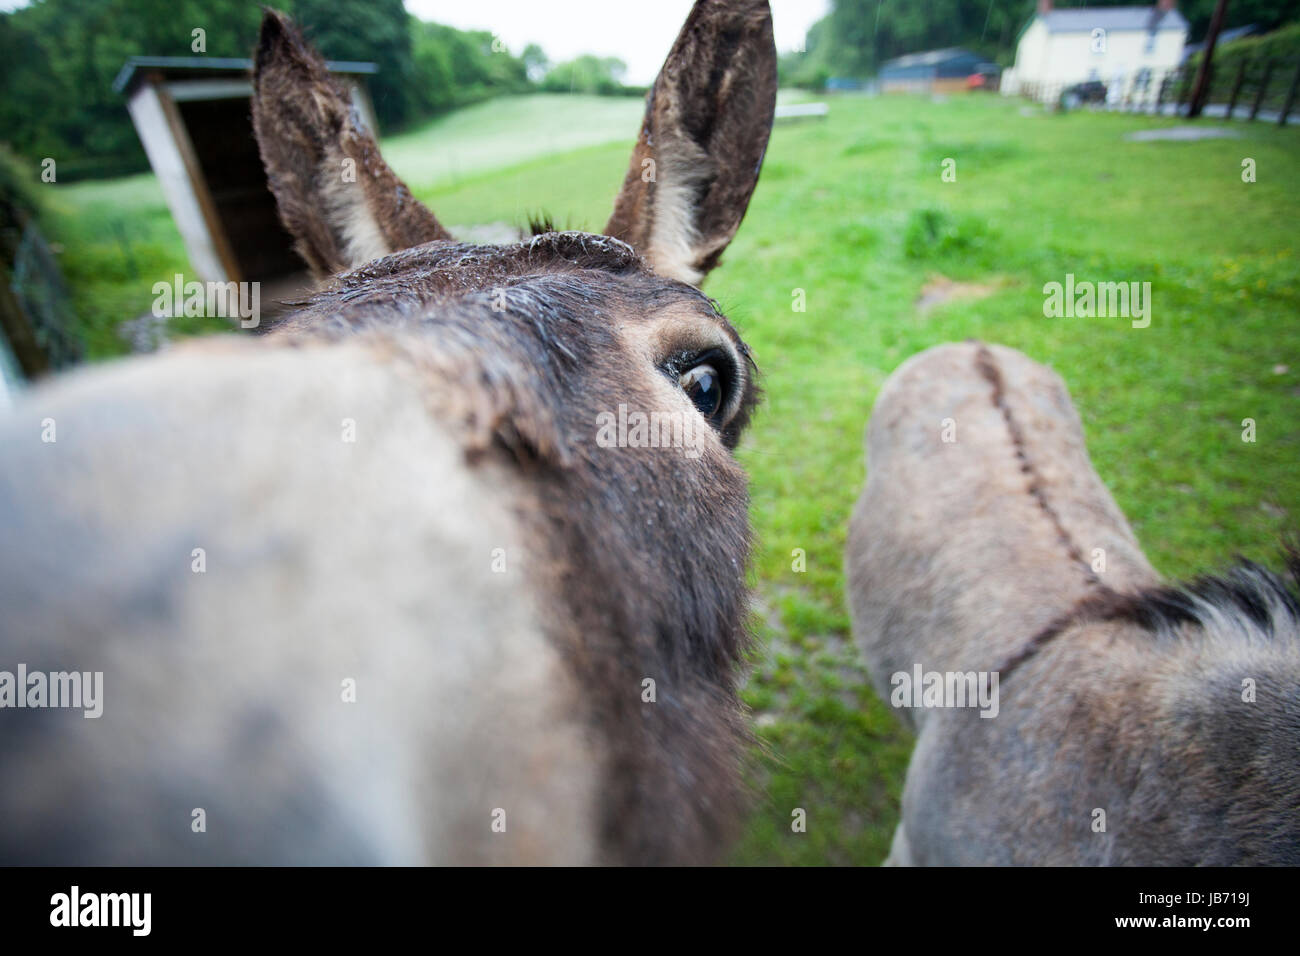 Welsh farmer's donkeys George and Sam looking into the camera of a wet and windy day with farm cottage in the background, Stock Photo